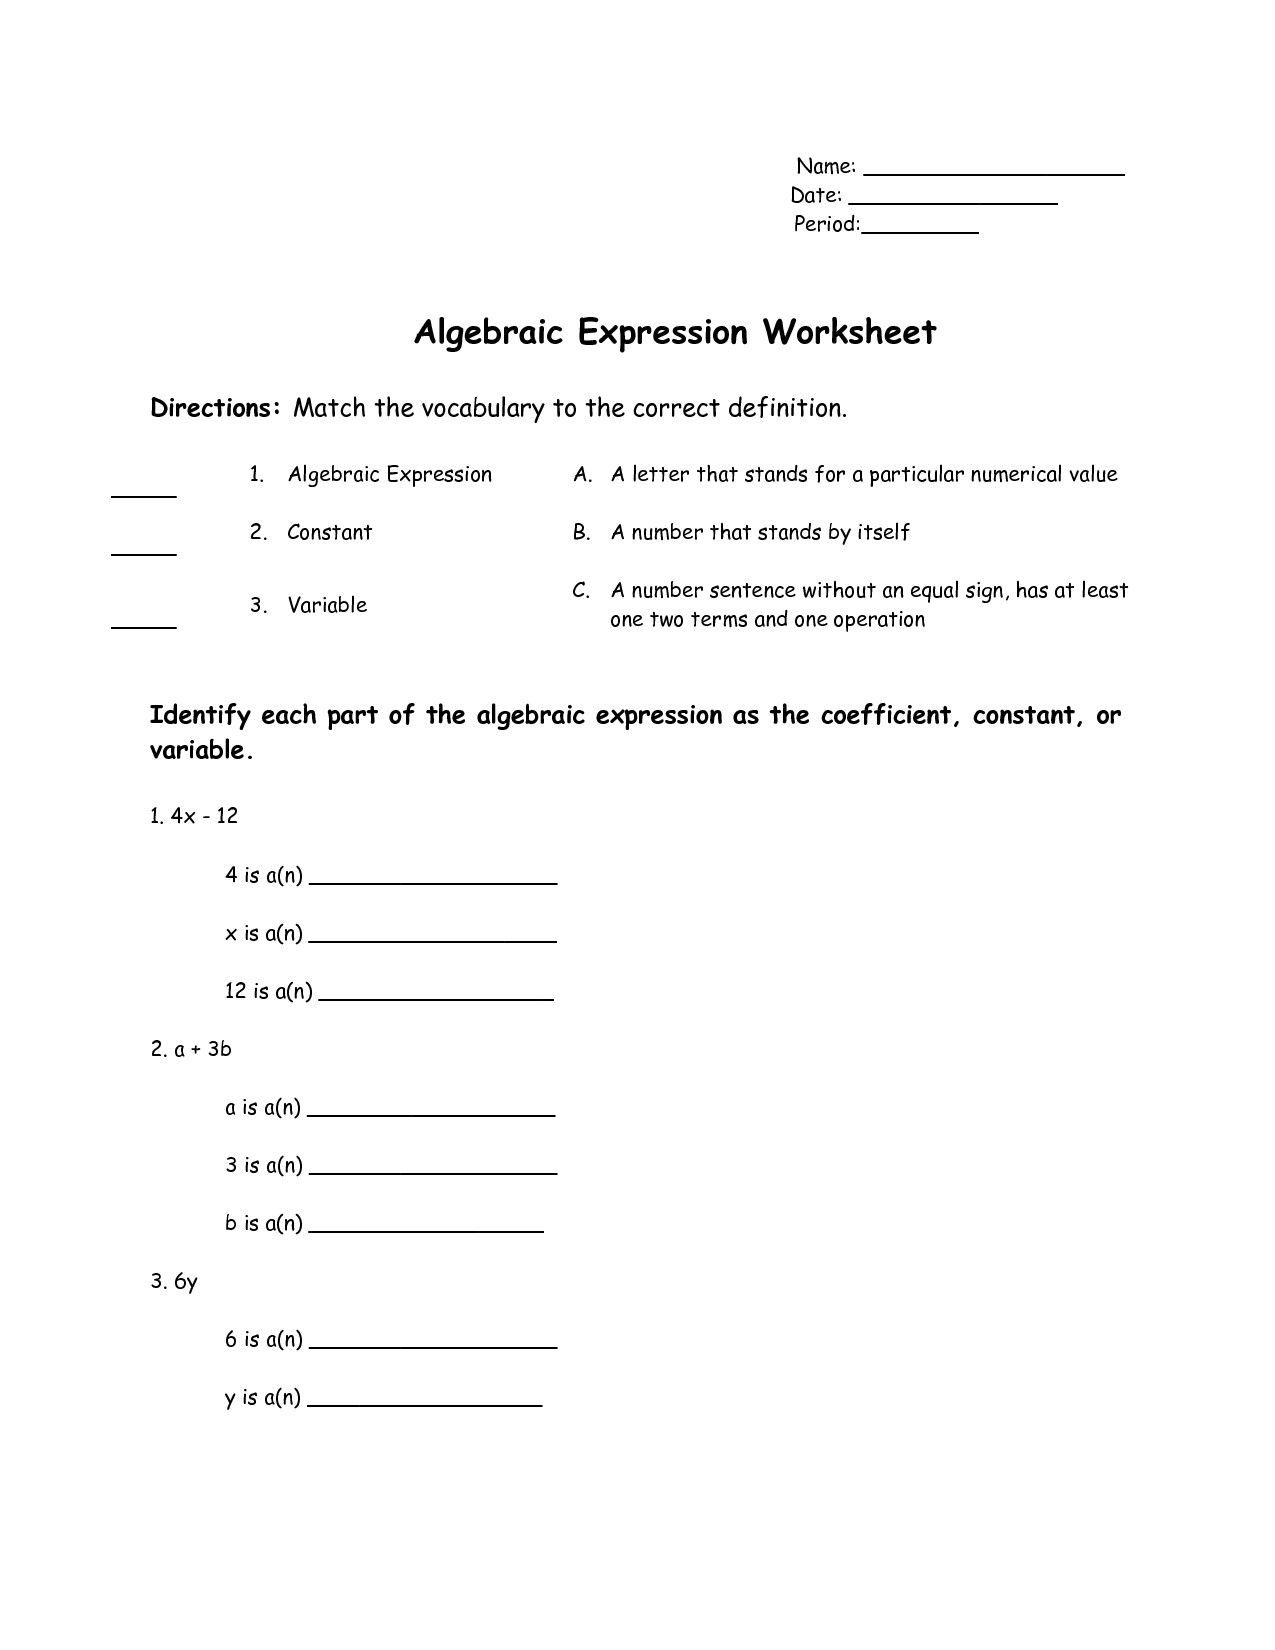 Simplifying Algebraic Expressions Worksheet Answers